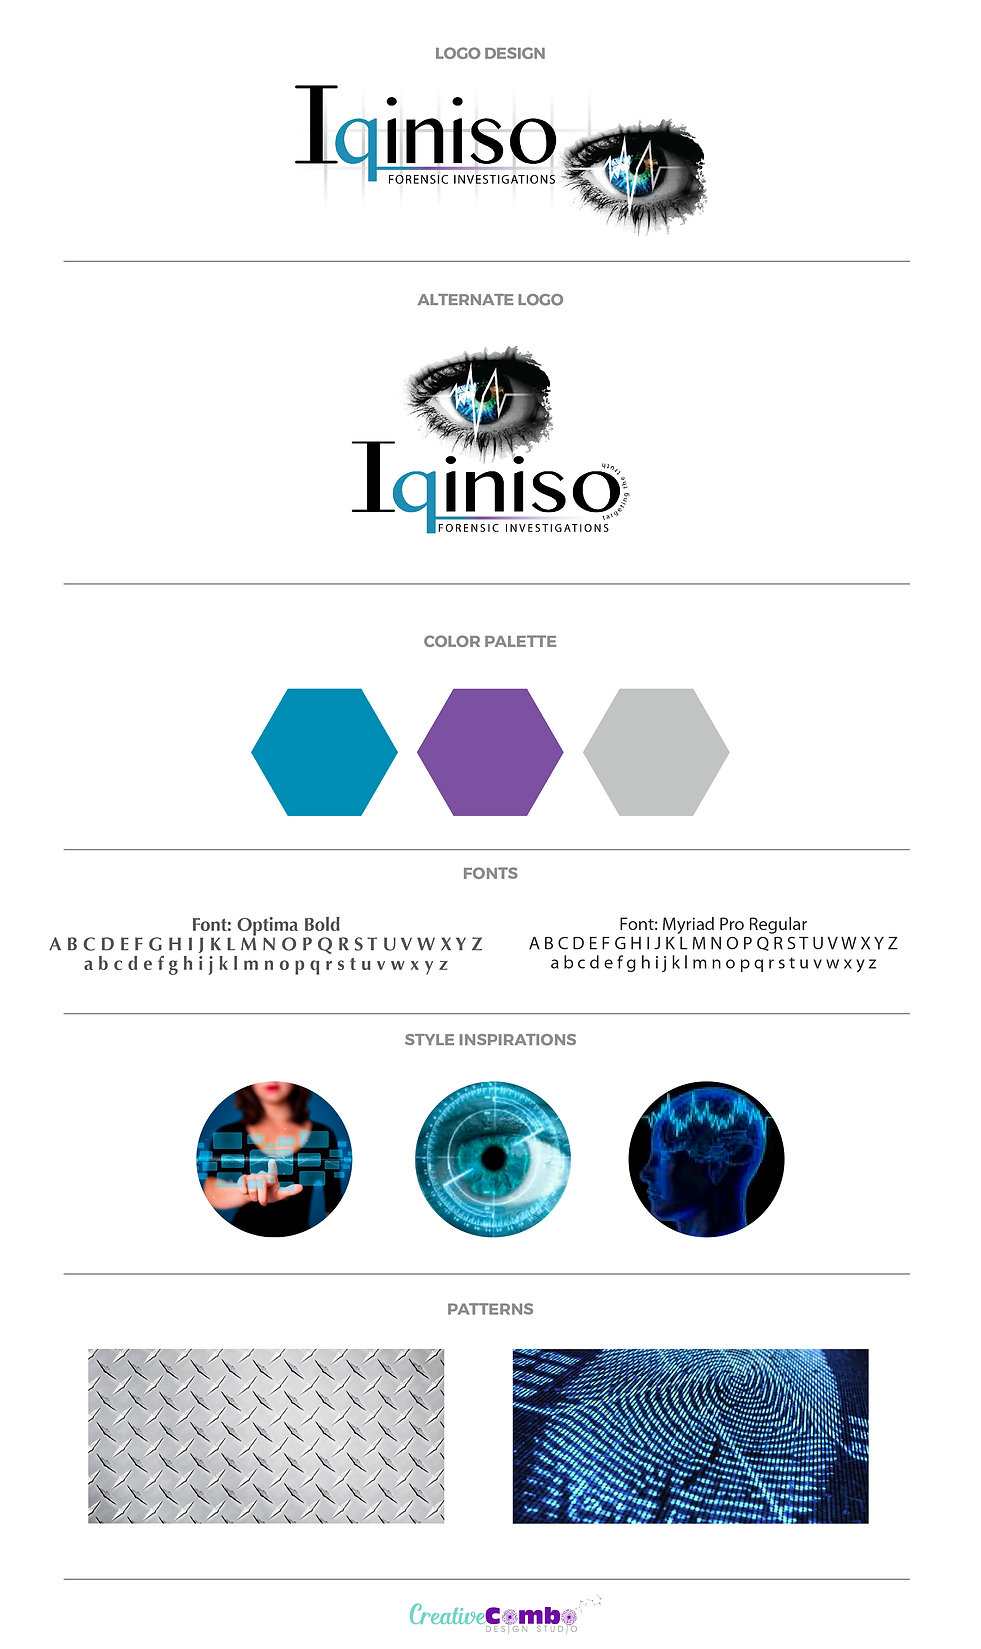 Iqiniso Forensic Investigations Company Brand Design